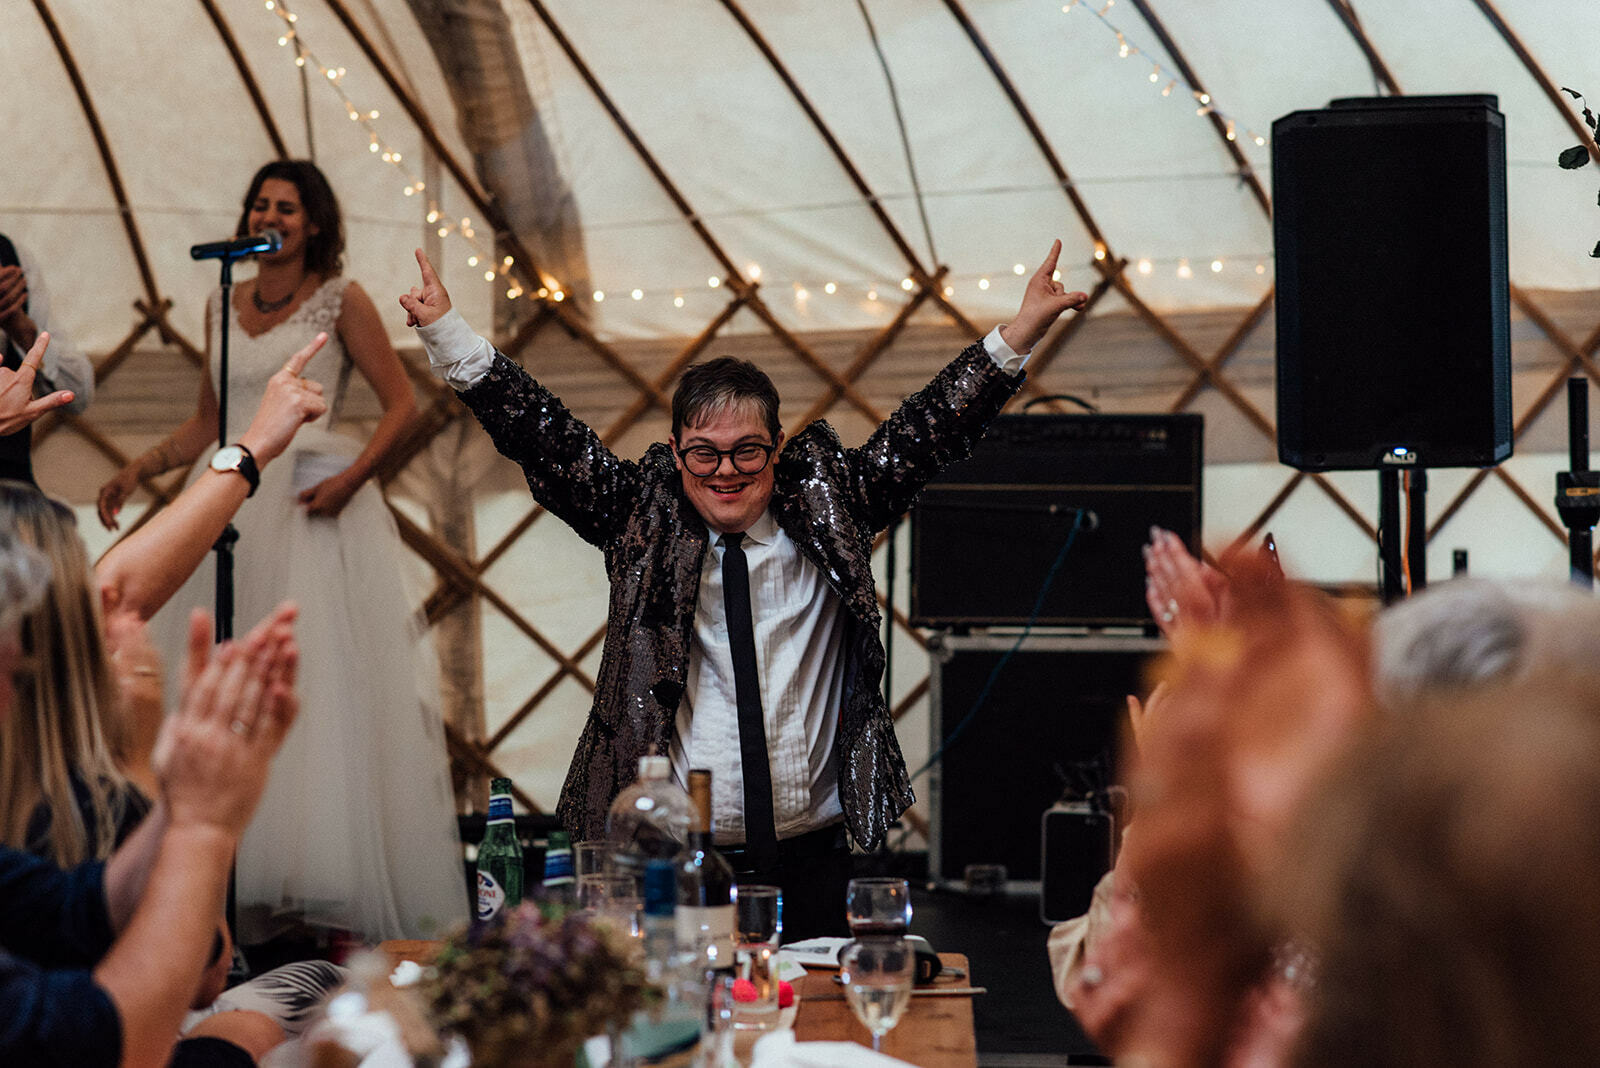 Wedding guest in a sequinned jacket raises both his hands in the air enthusiastically